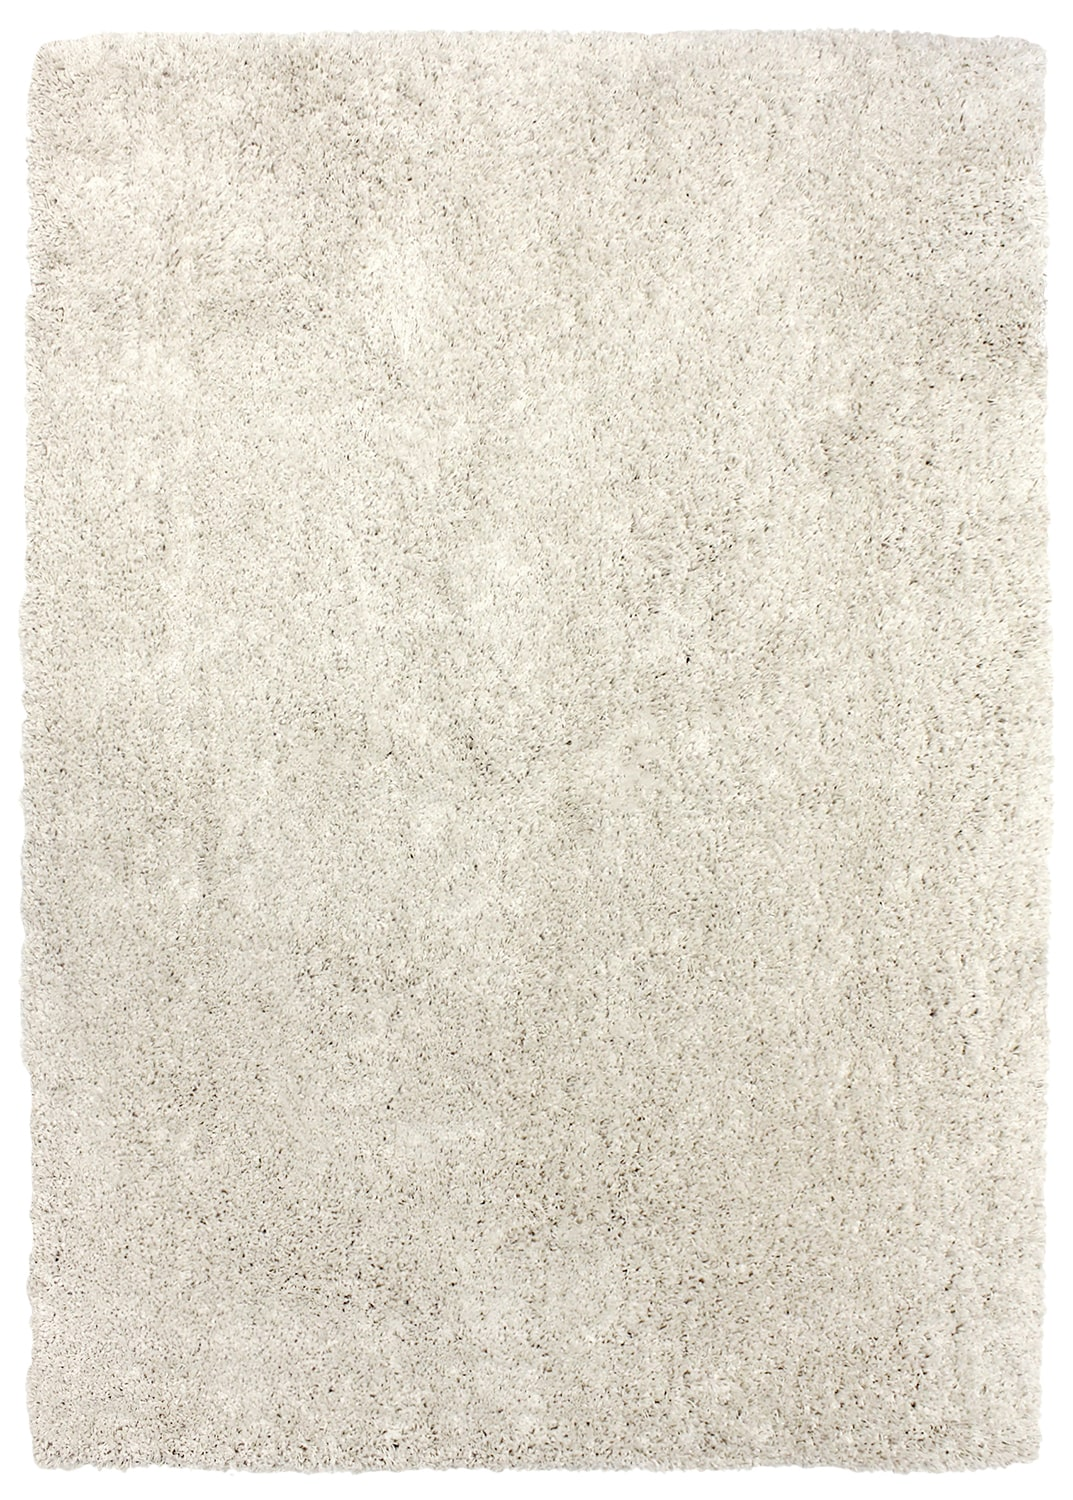 Loft Off-White Shag Area Rug – 5' x 8'